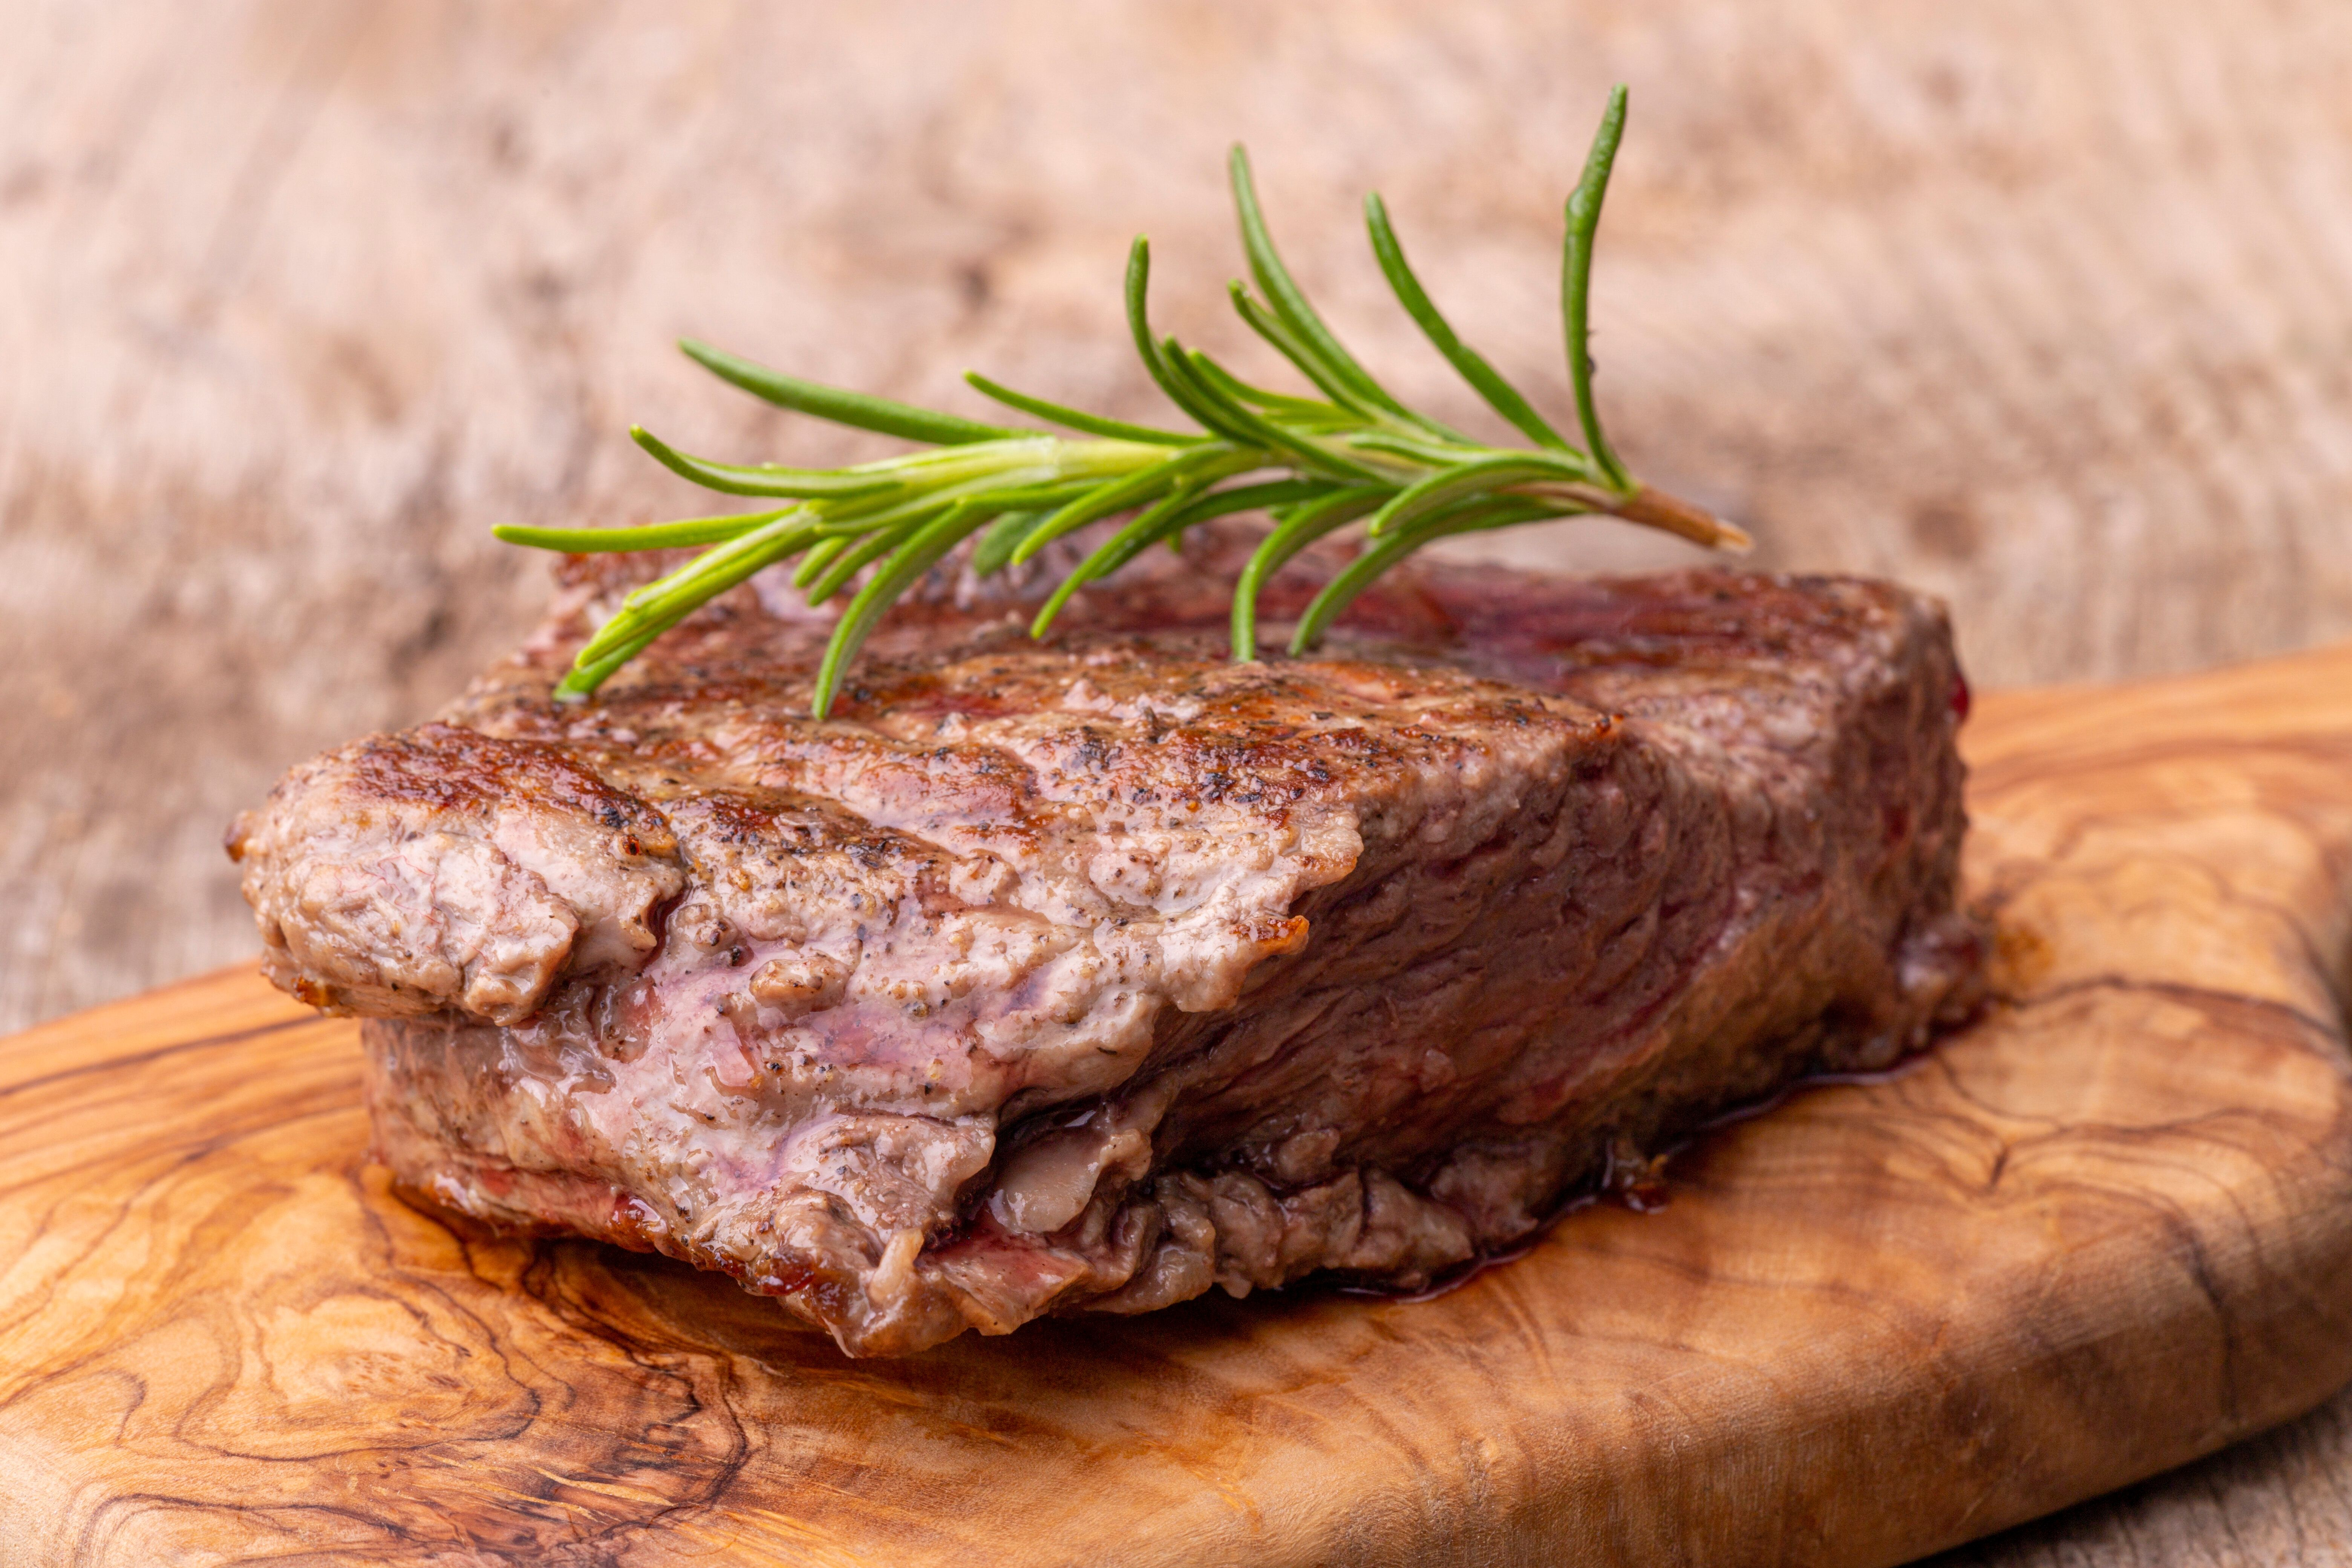 Red Meat's Links To Heart Disease Are Getting Harder To Ignore